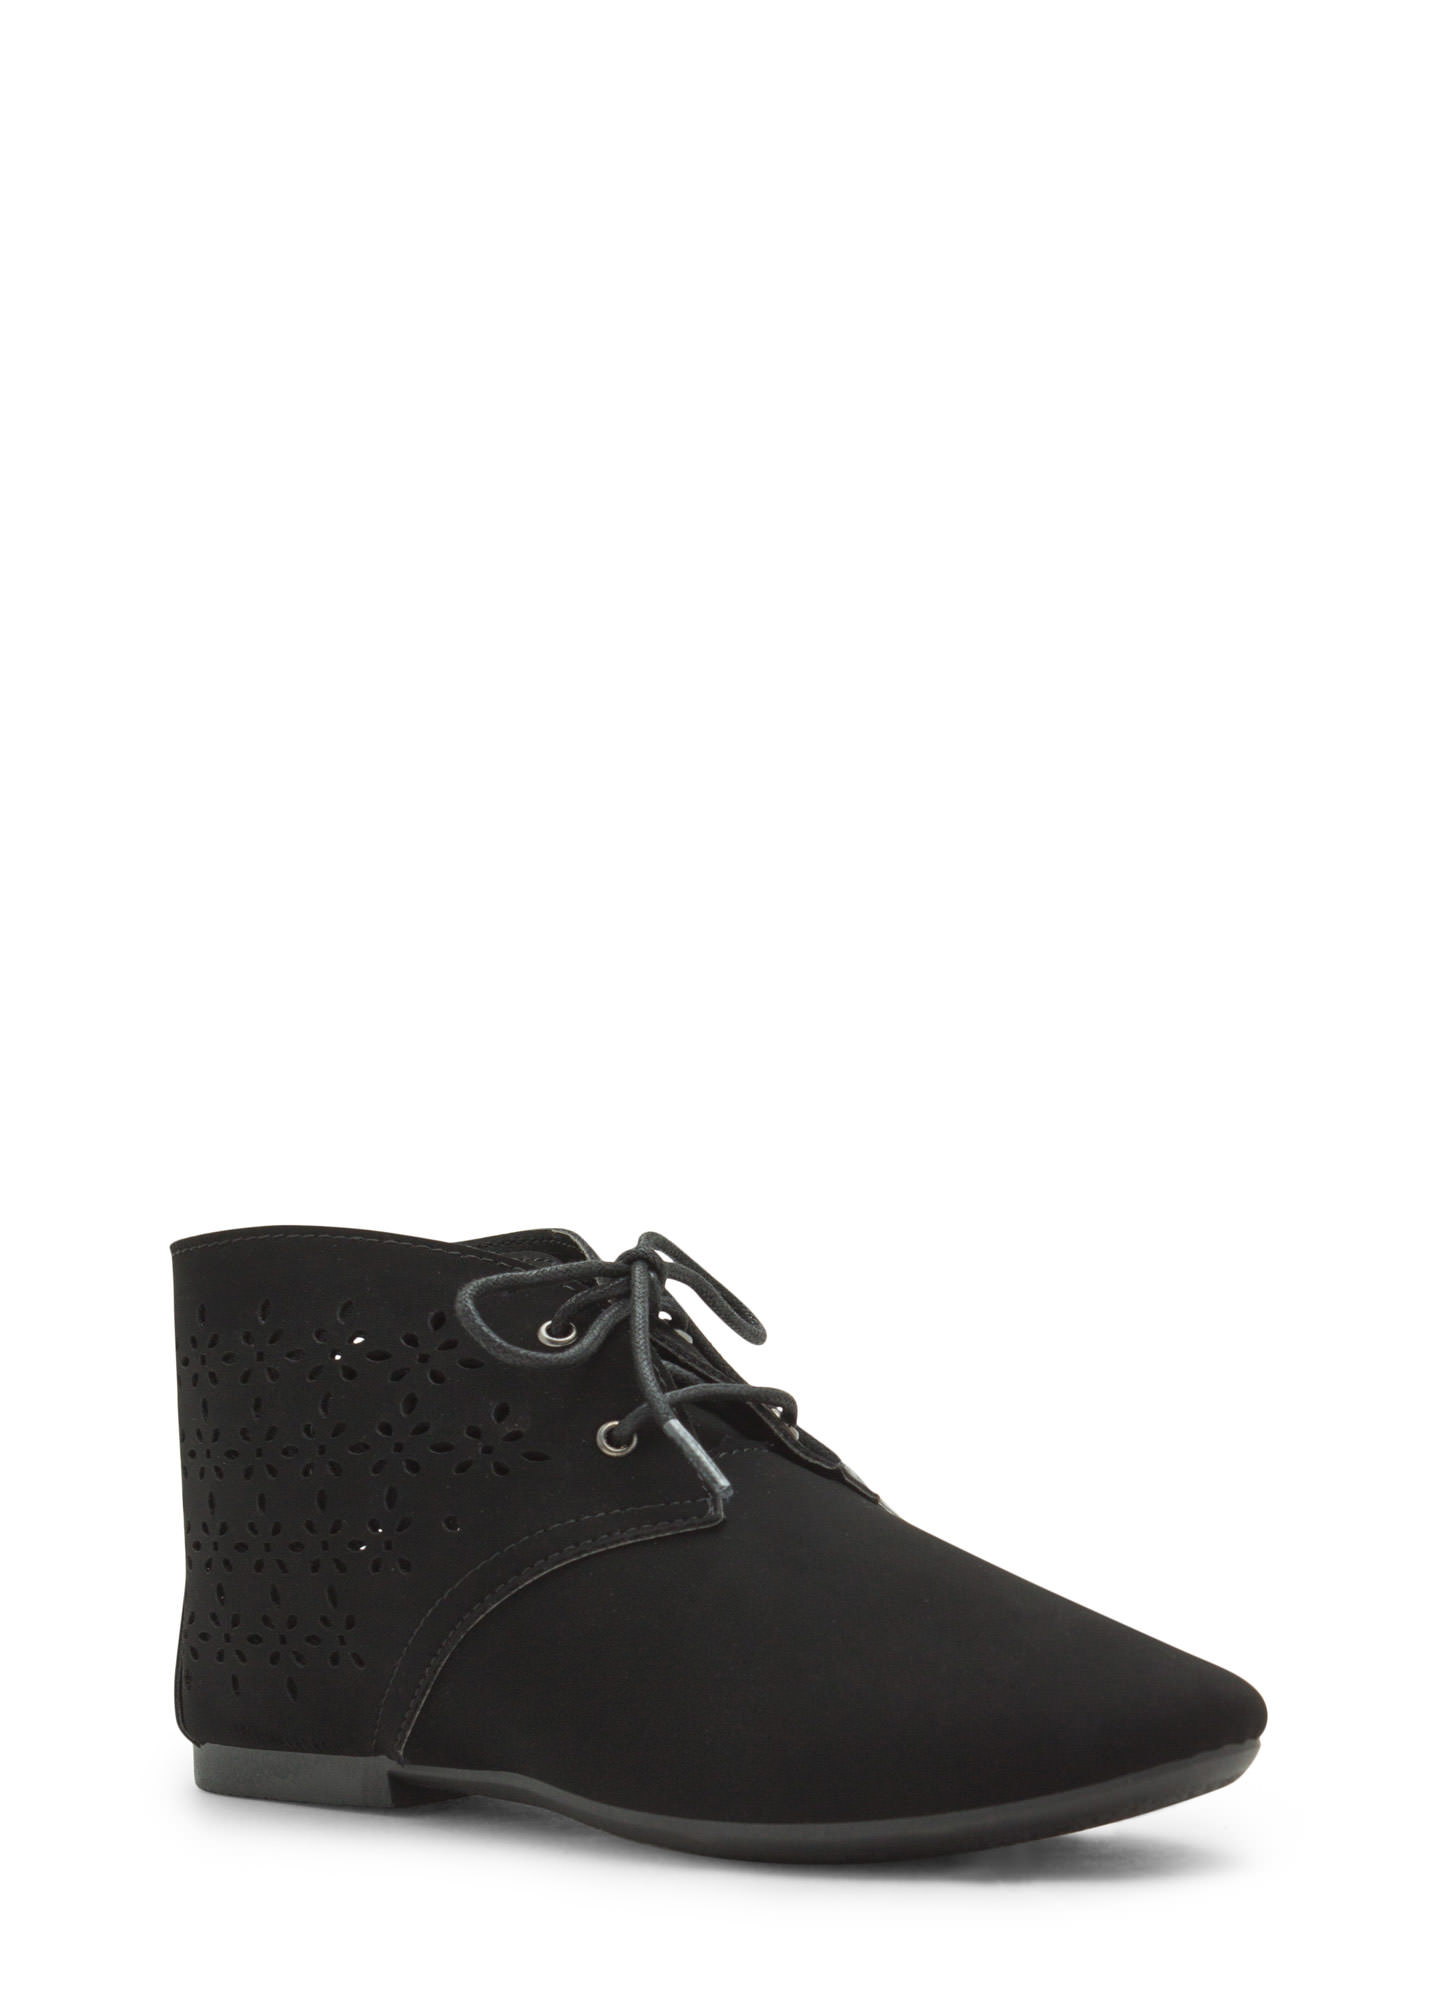 Laser Tag Cut-Out Faux Nubuck Booties BLACK